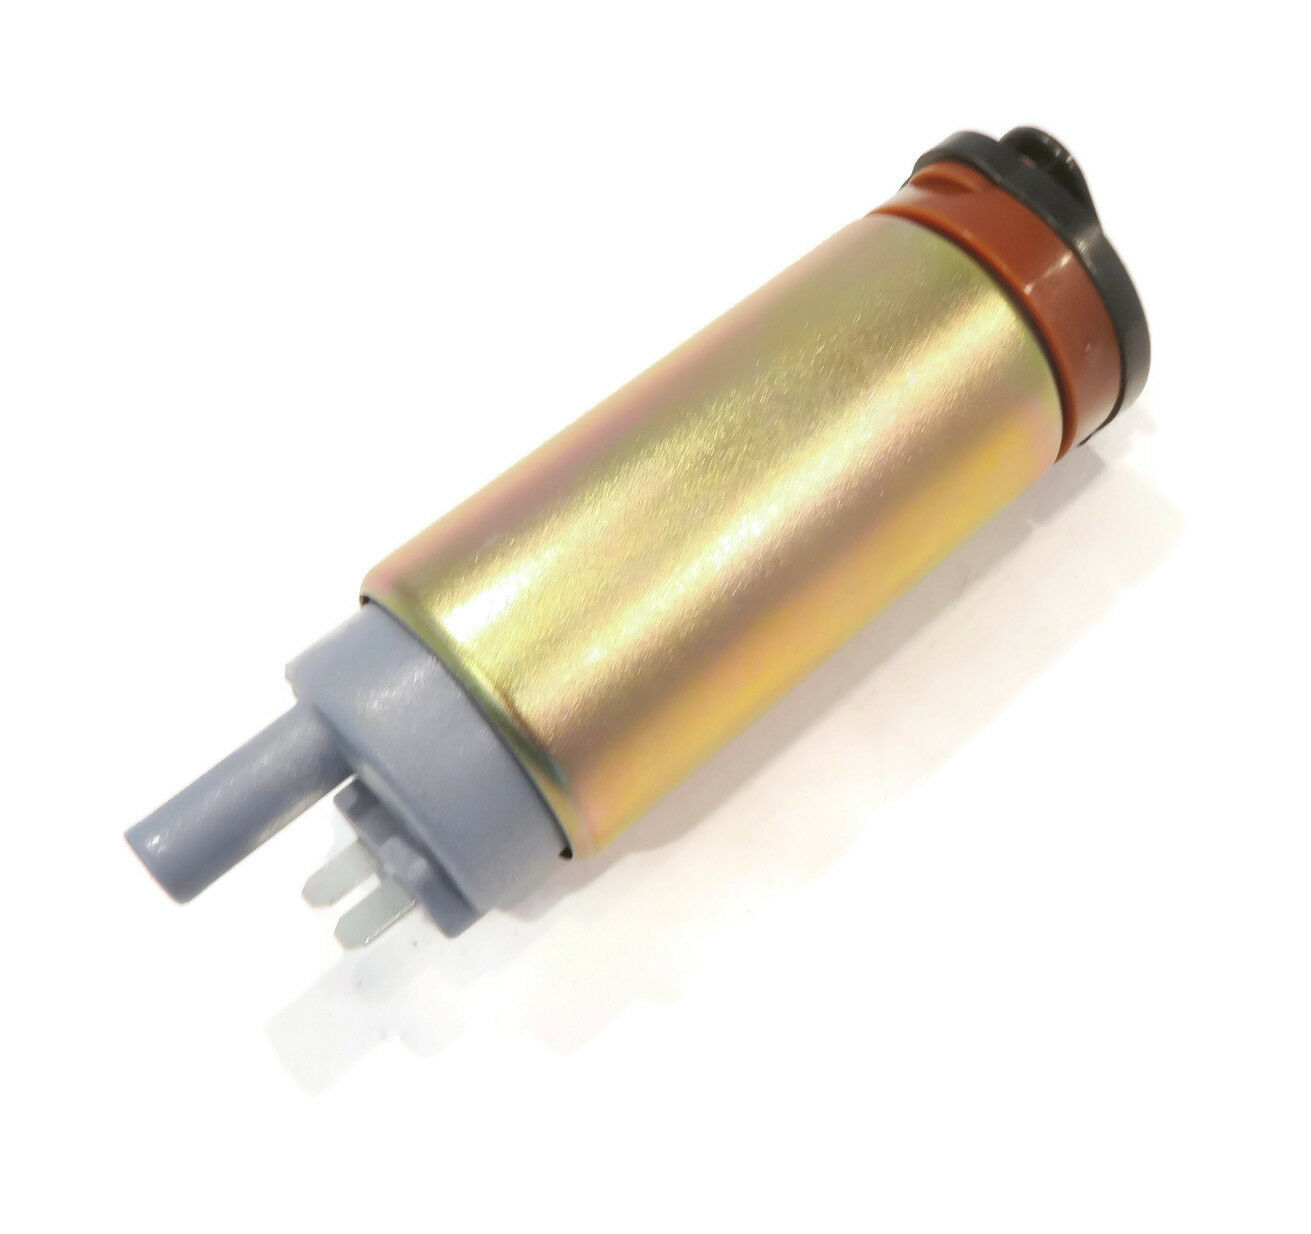 New Fuel Pump For MERCURY Mercruiser Outboard 20 30 35 40 45 60 HP 892267A51